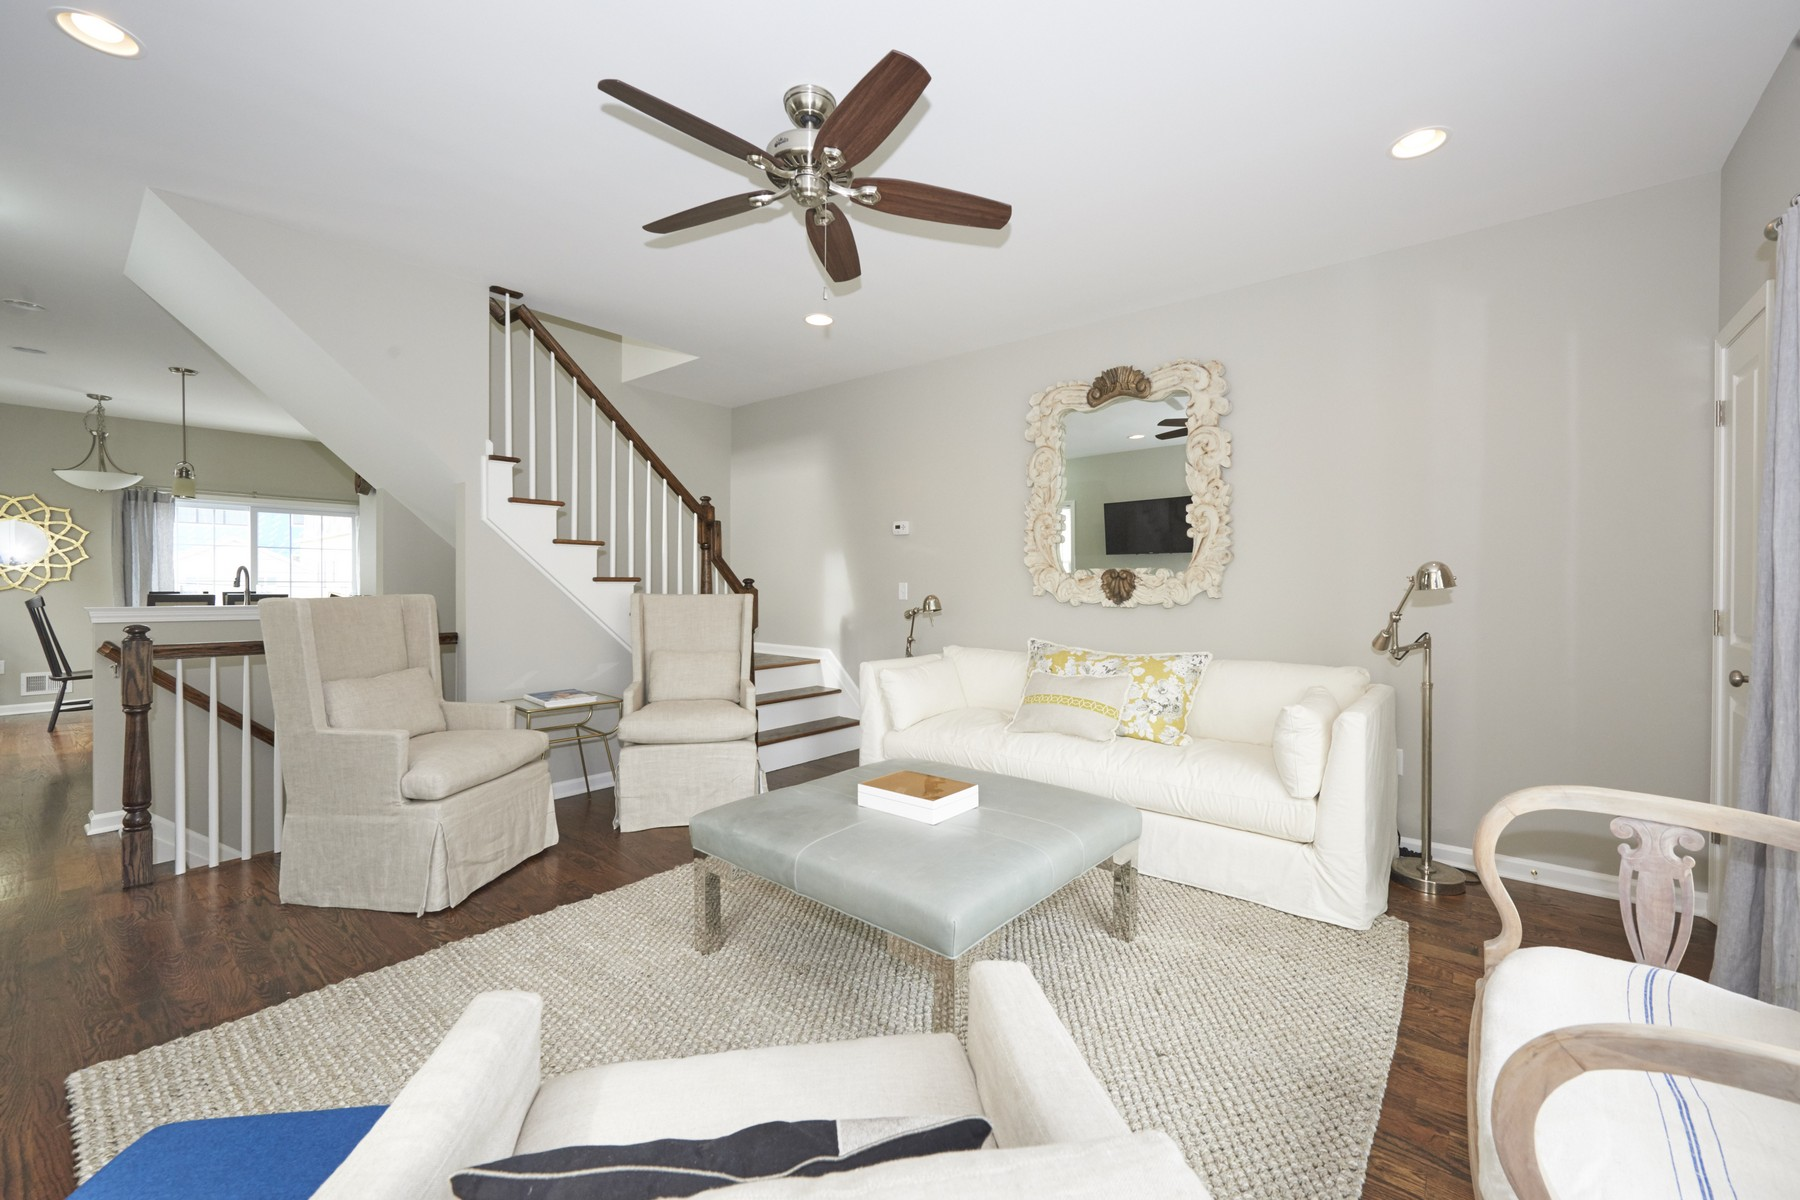 Single Family Homes for Sale at Mulit-level Beach Home in the heart of popular Sea Bright NJ 8 E. Church Street Sea Bright, New Jersey 07760 United States